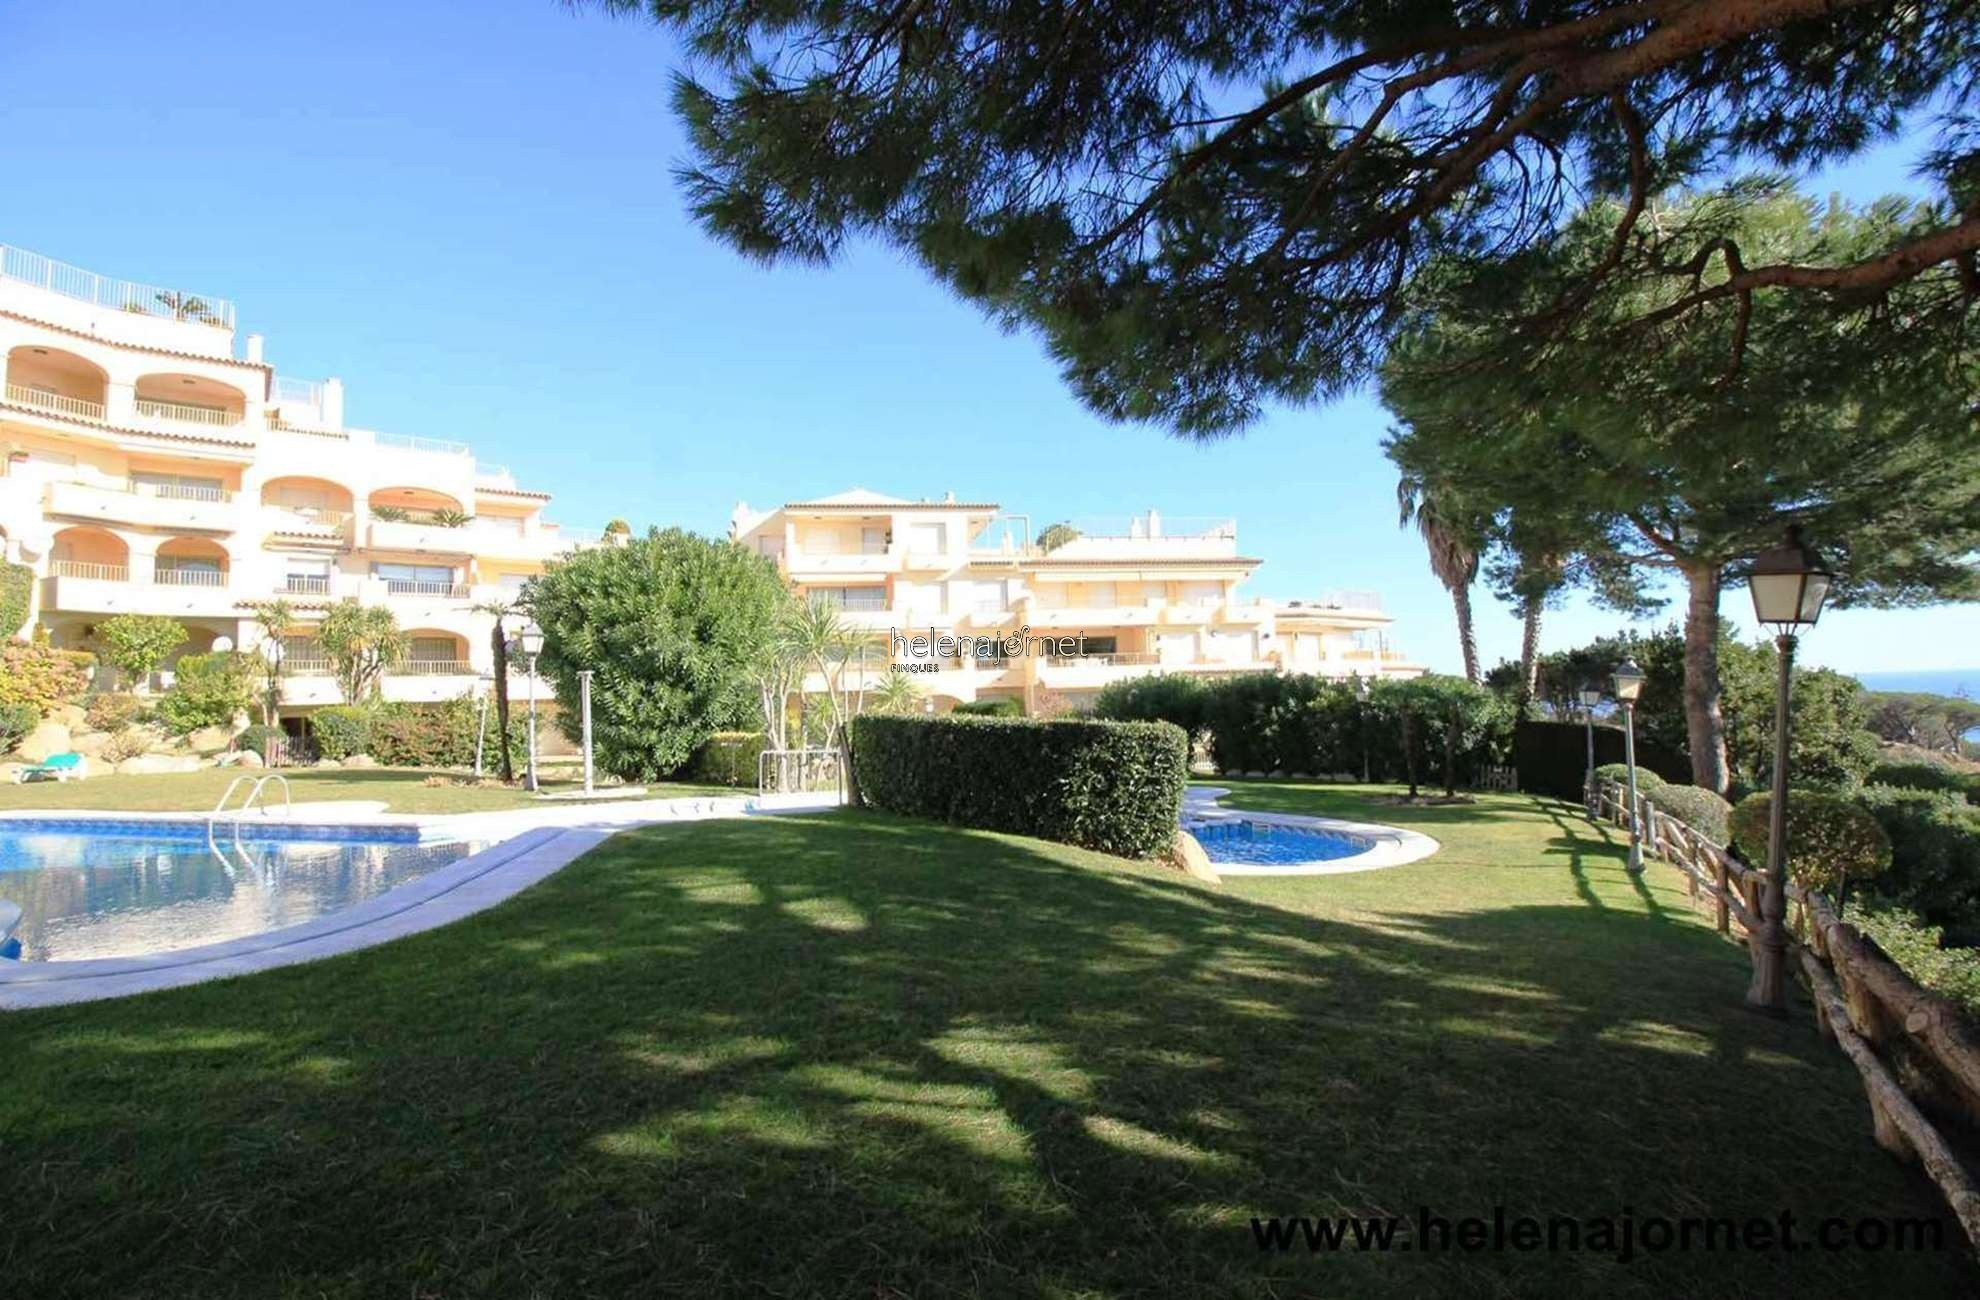 Ground floor apartment with private garden and community pool - 70052 Las Velas